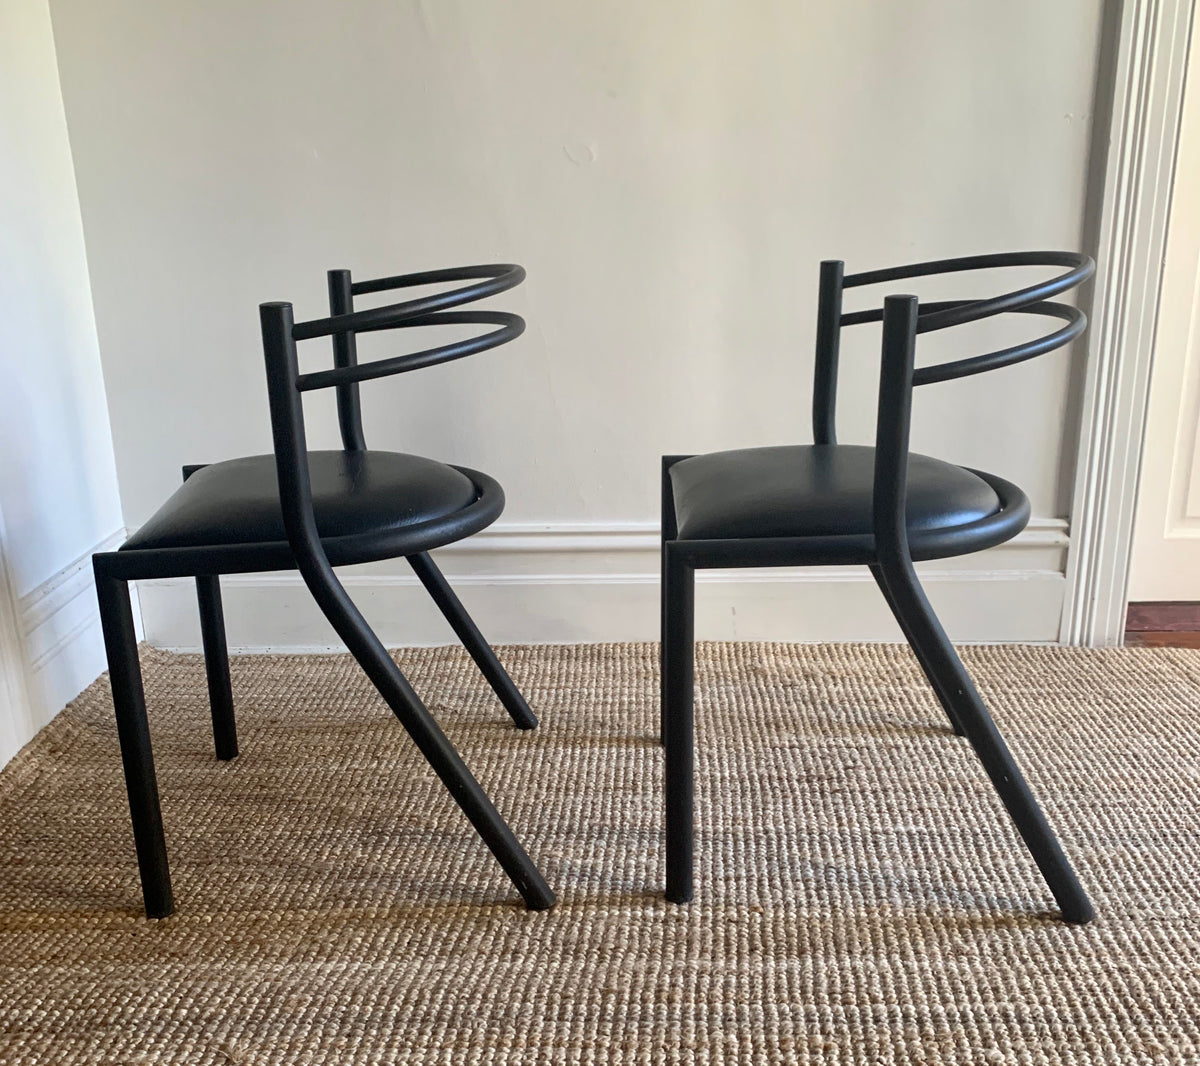 Curvy Black Post-Modern Chairs